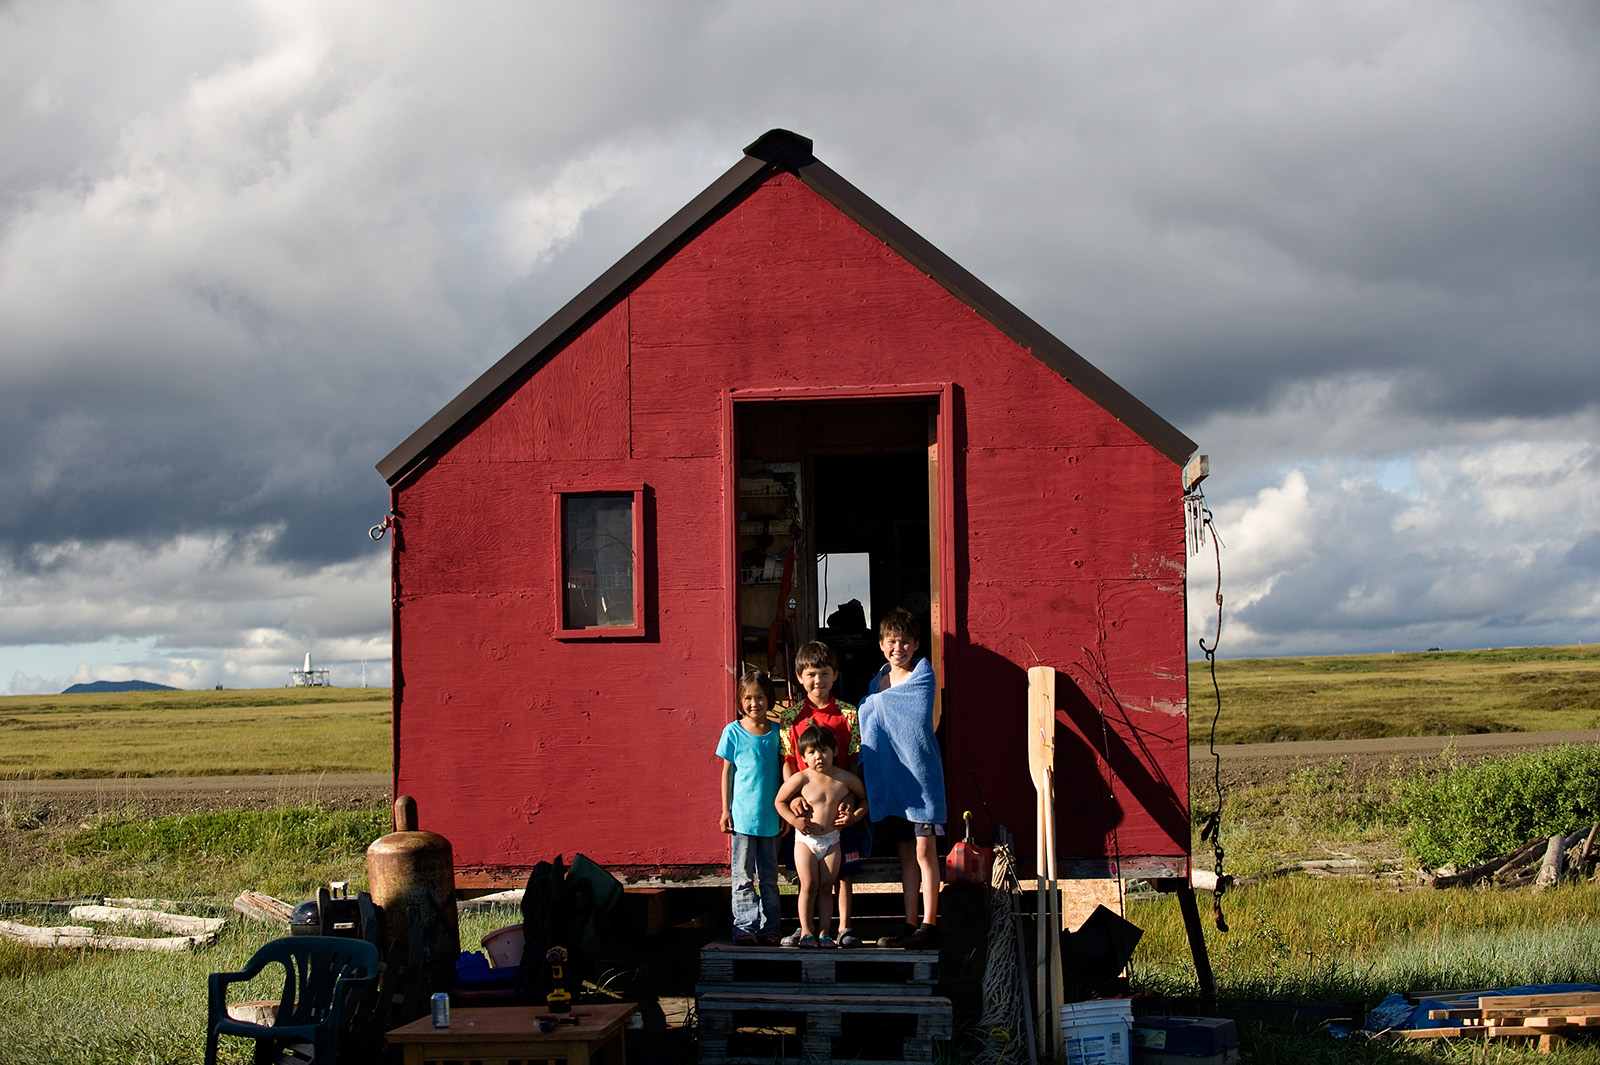 NOME, AK - JULY 14:  At fish camp a half hour\'s drive outside Nome, Alaska, children enjoy the long daylight hours on Wednesday, July 14, 2010.  (Photo by Nikki Kahn/The Washington Post)